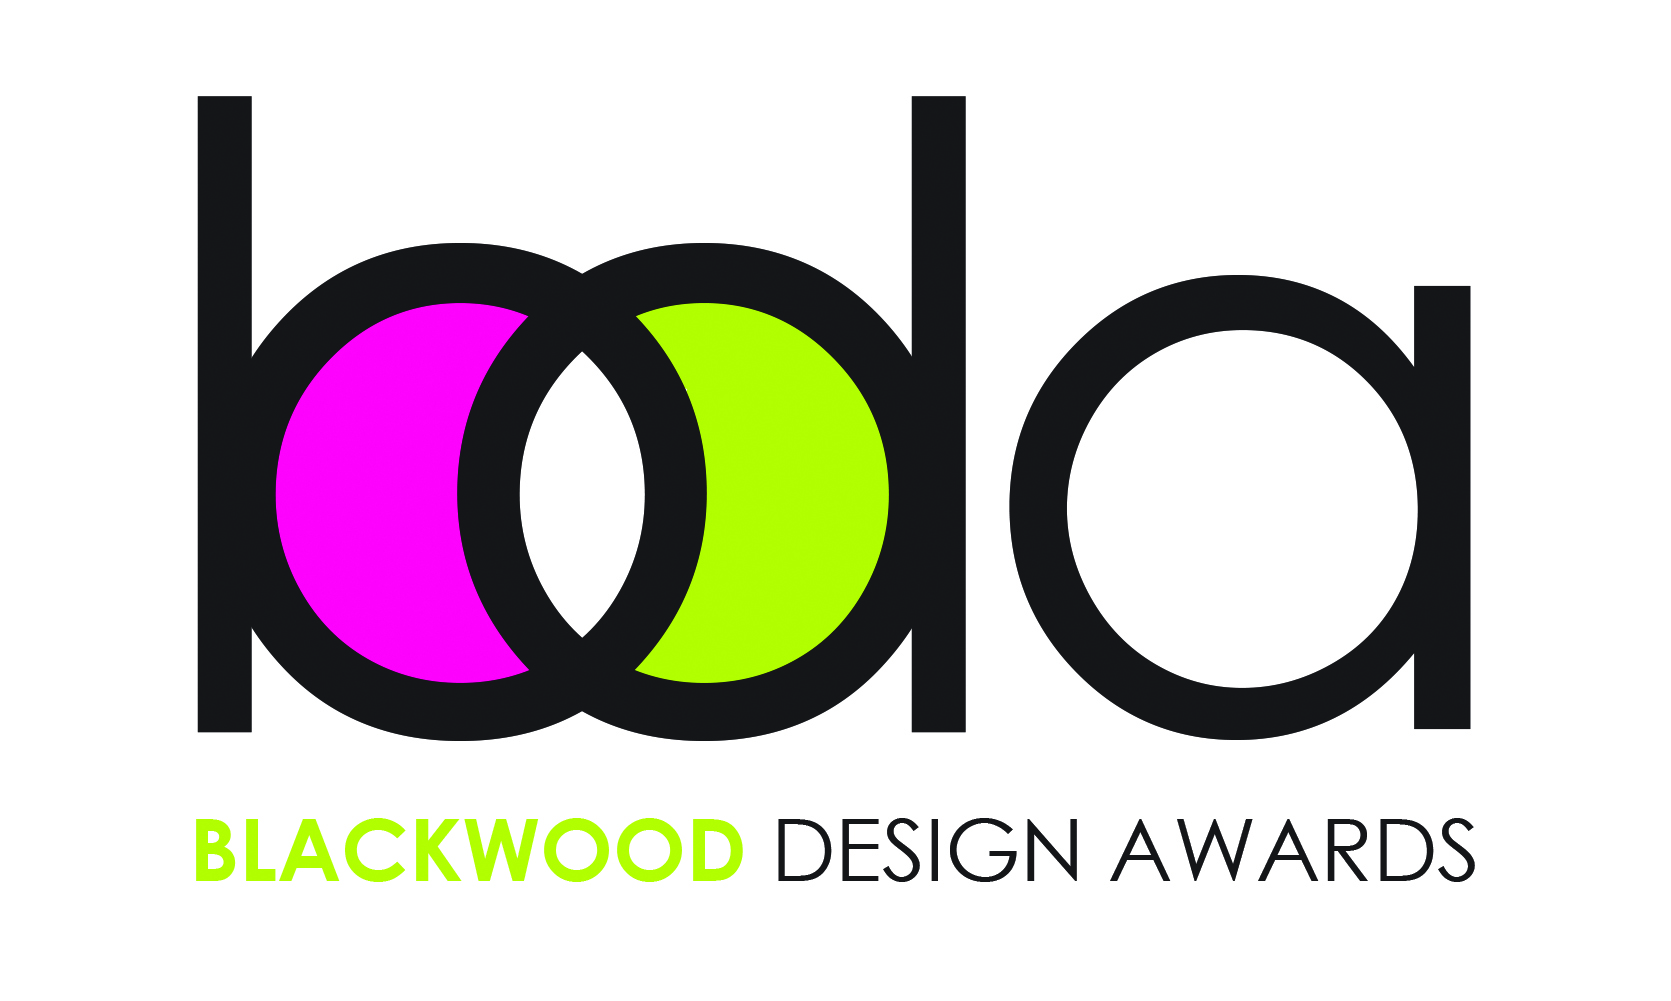 Top Design Award Enhanced For 2016 Entries